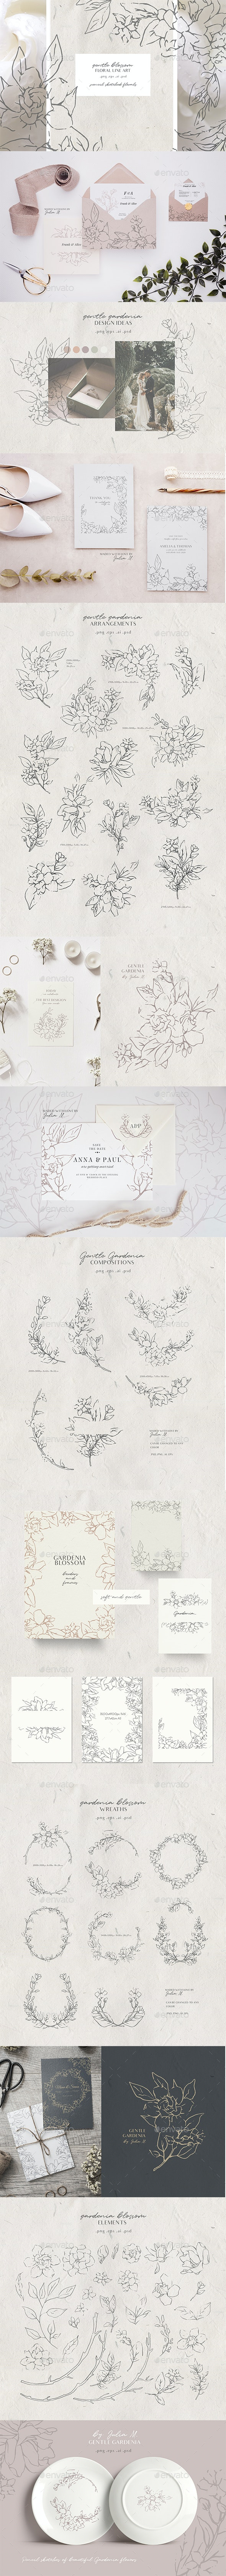 Gardenia Flowers Pencil Sketches - Line Art - Objects Illustrations